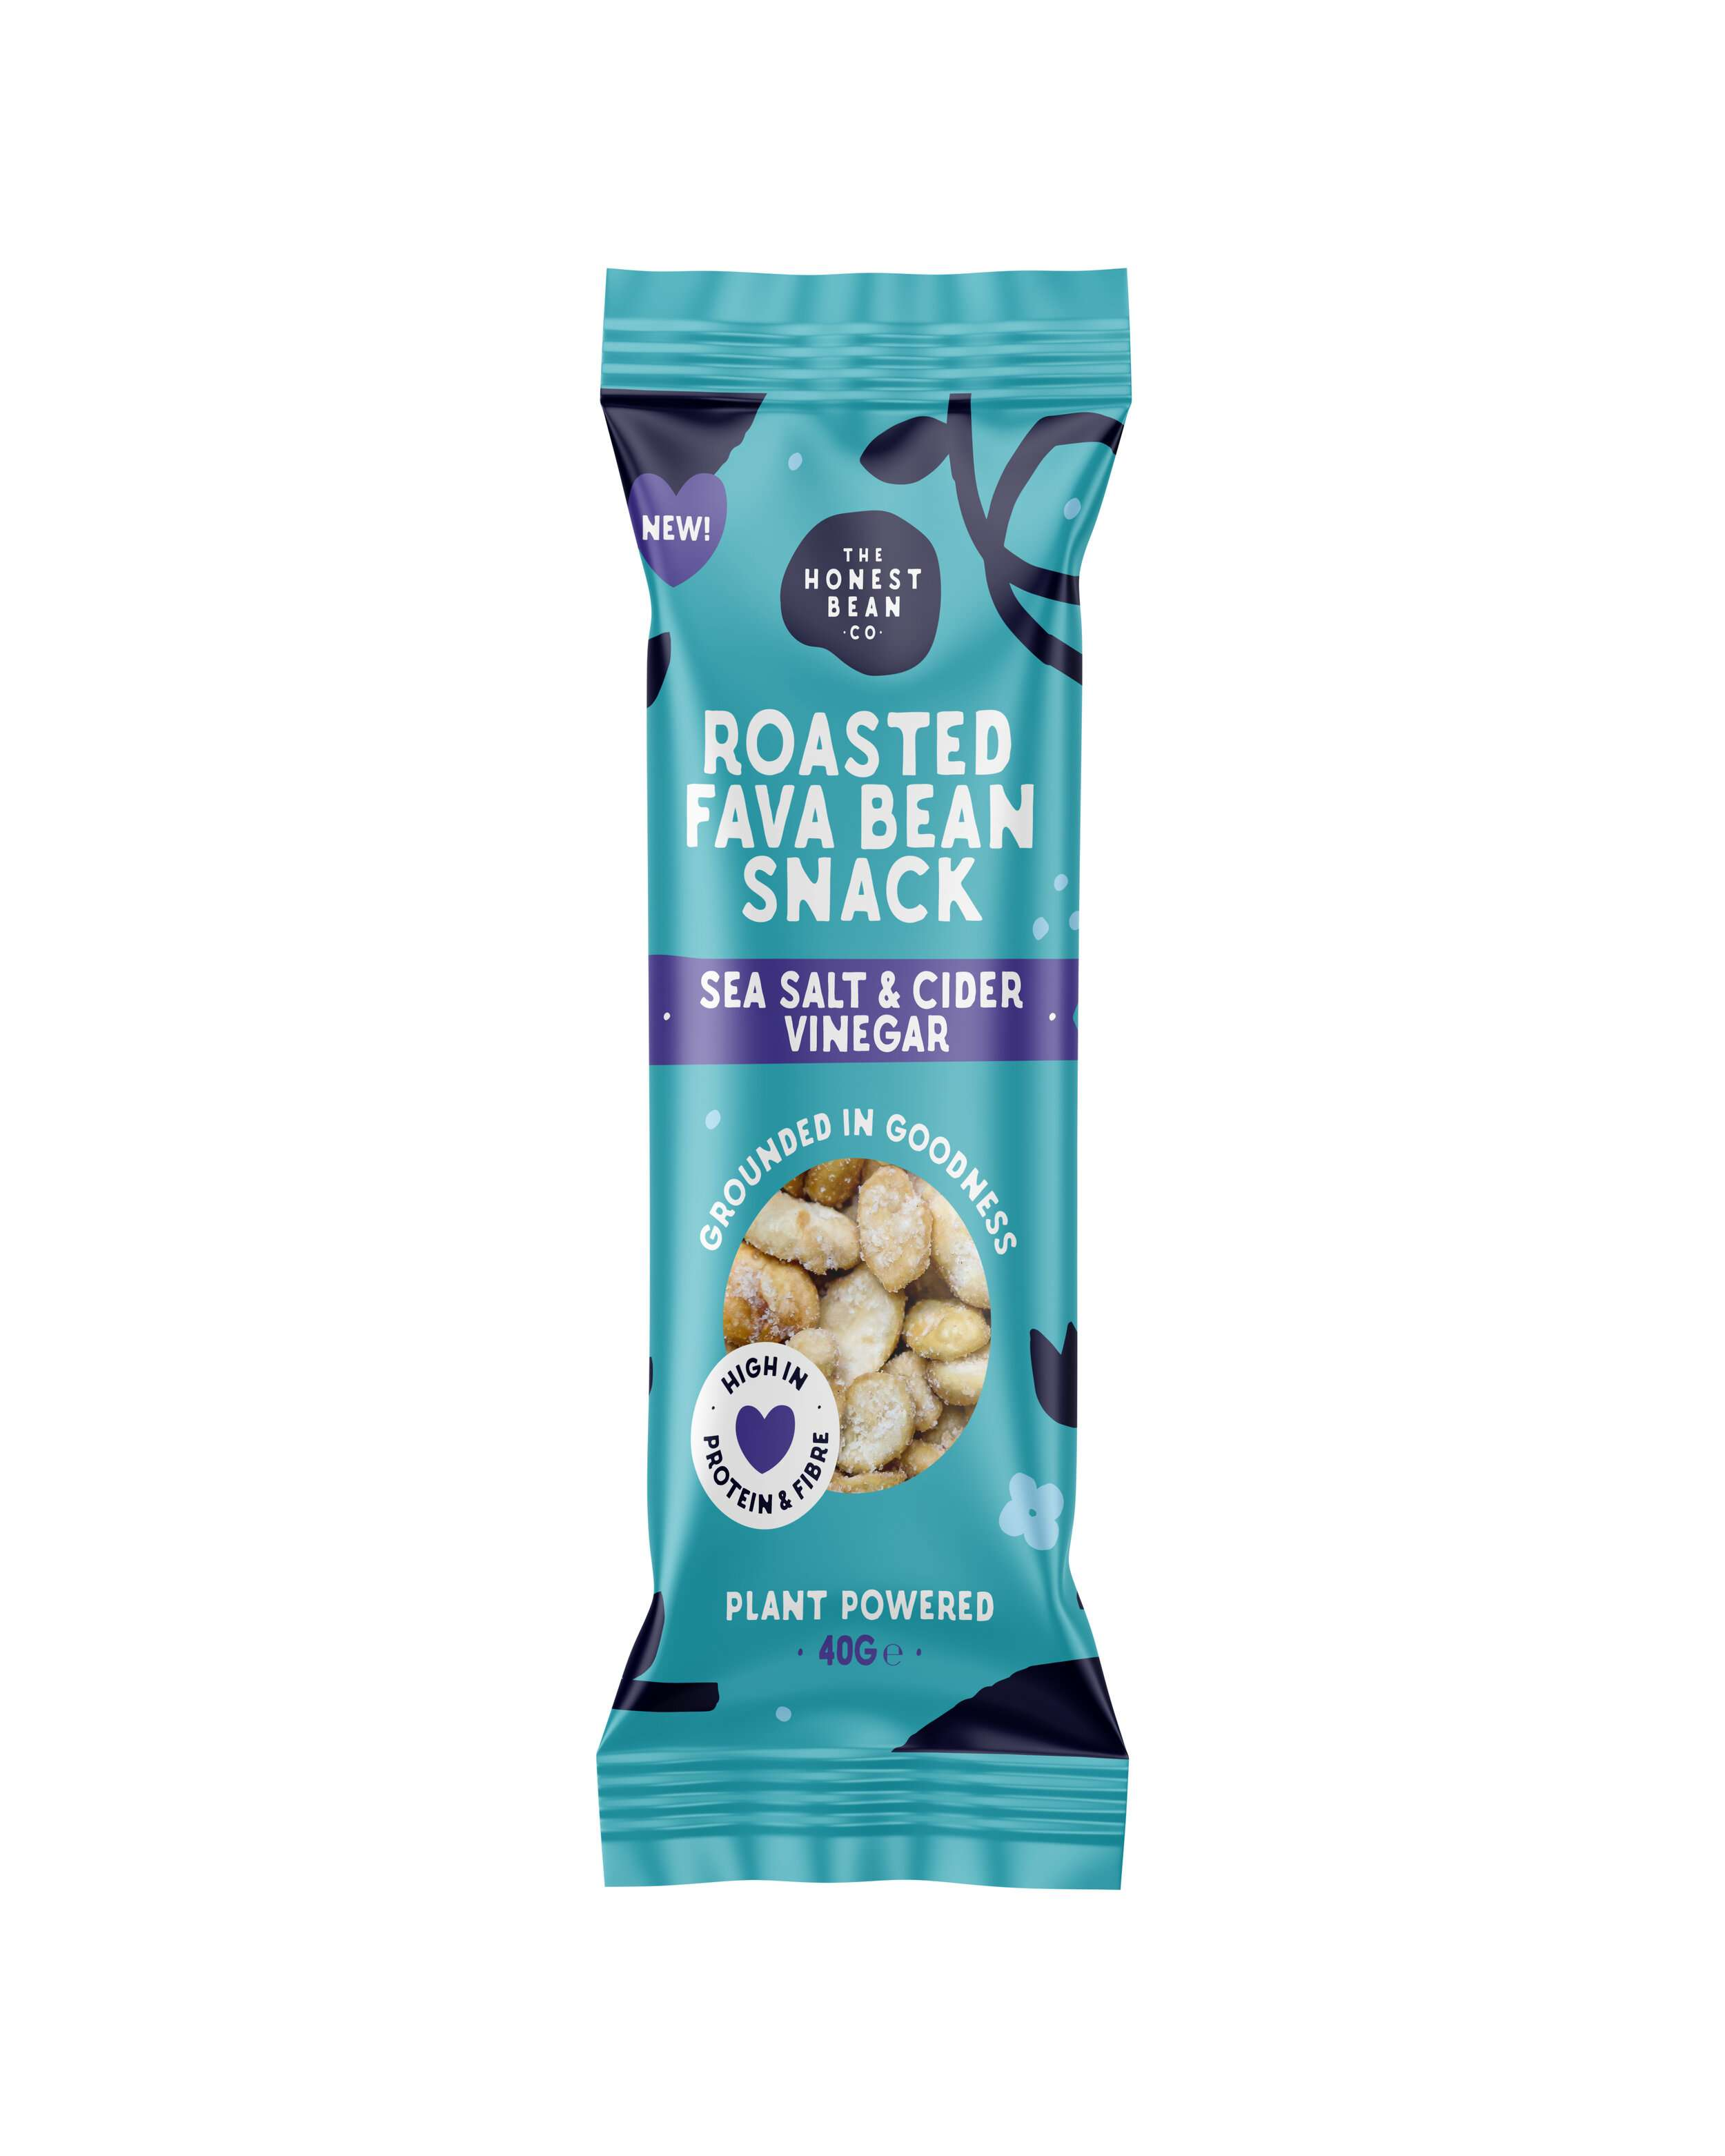 Honest Bean Roated Fava Bean Snack